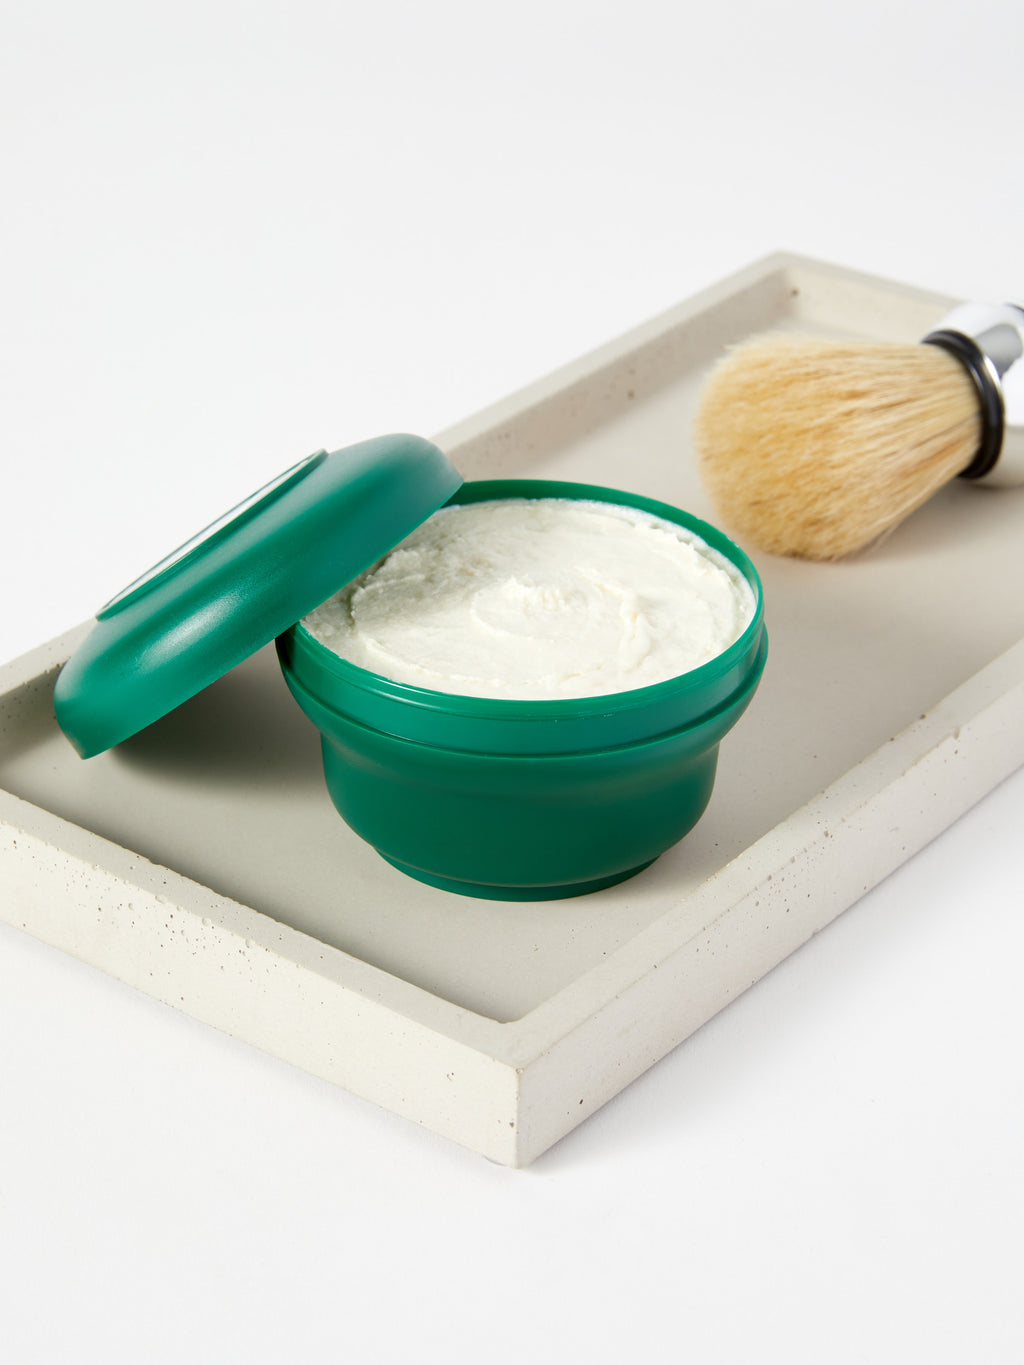 SHAVING SOAP IN A BOWL: REFRESHING & TONING